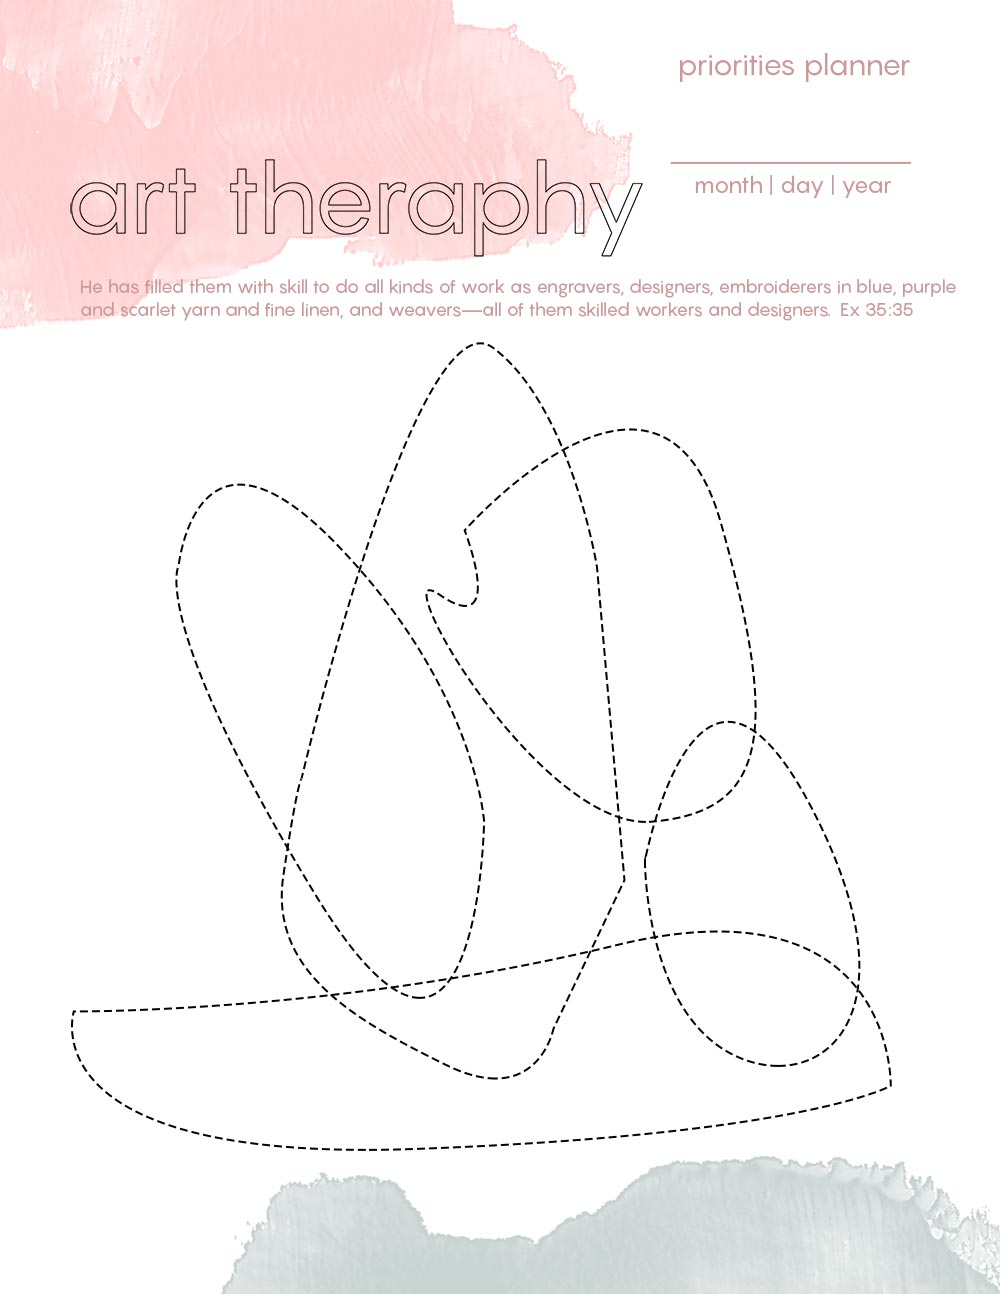 Art Therapy - Priorities Planner 2020